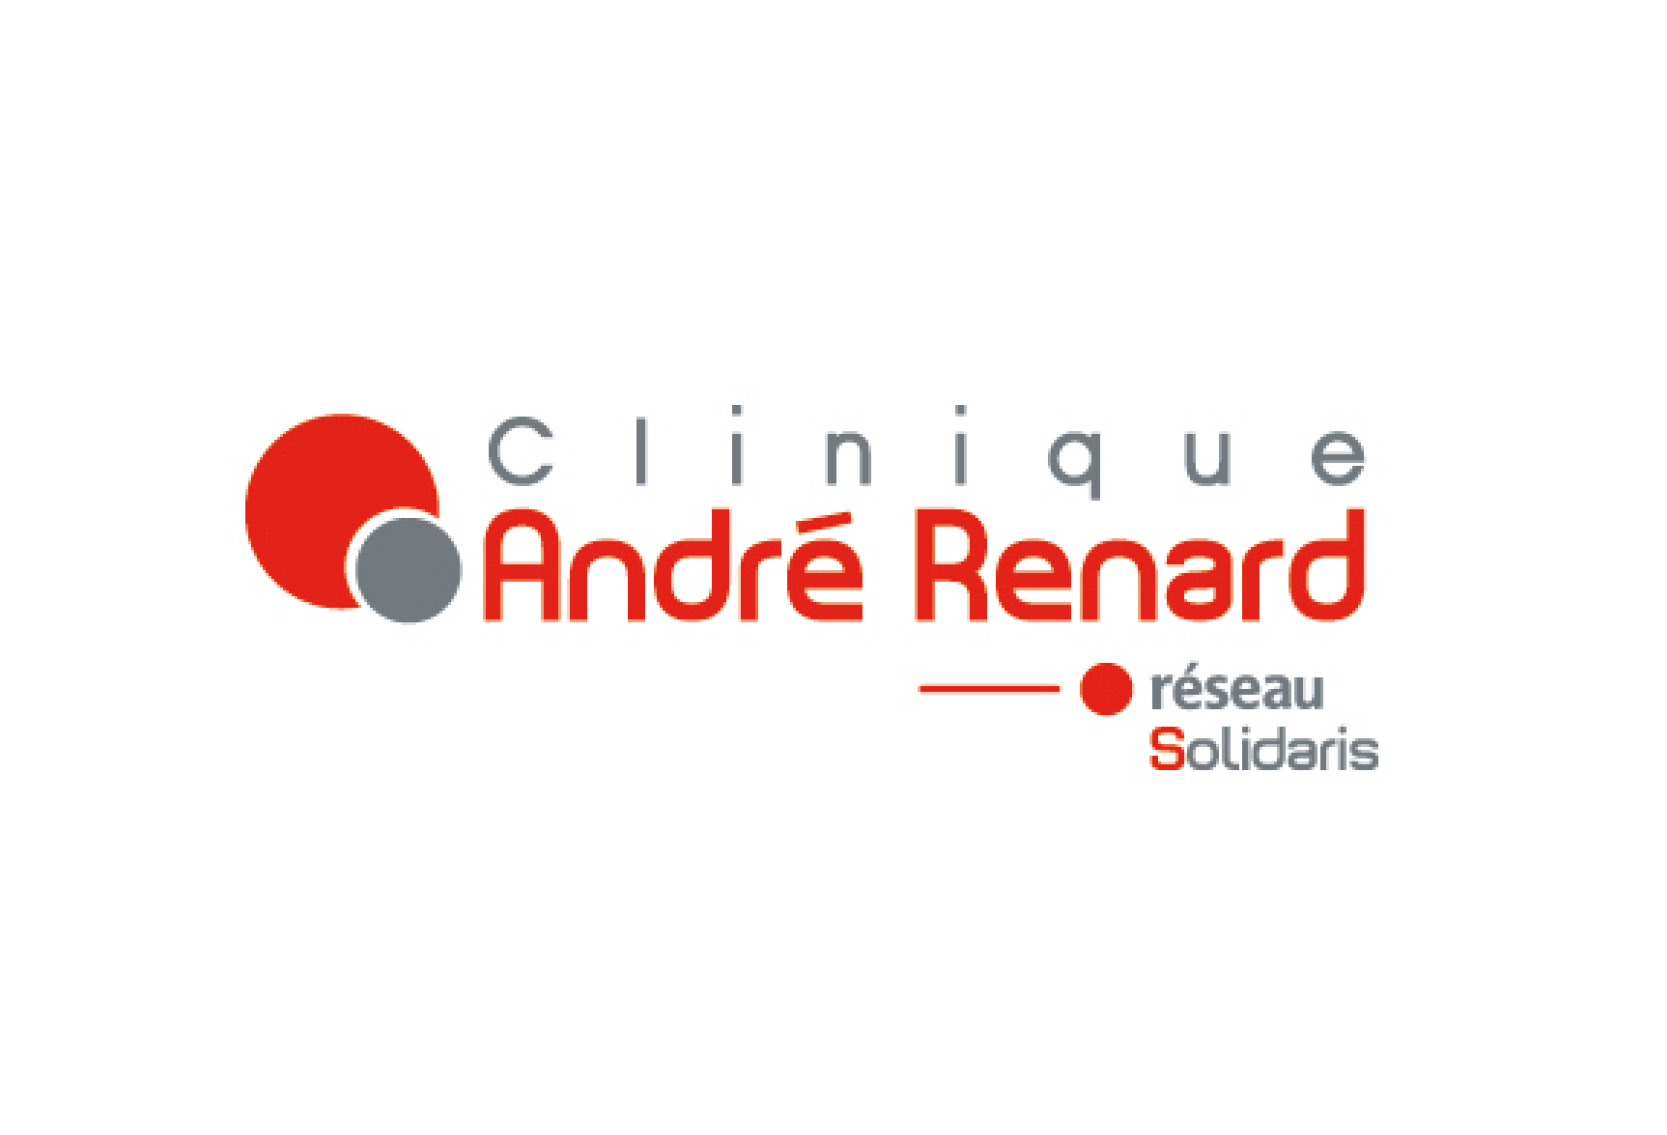 Clinique André Renard